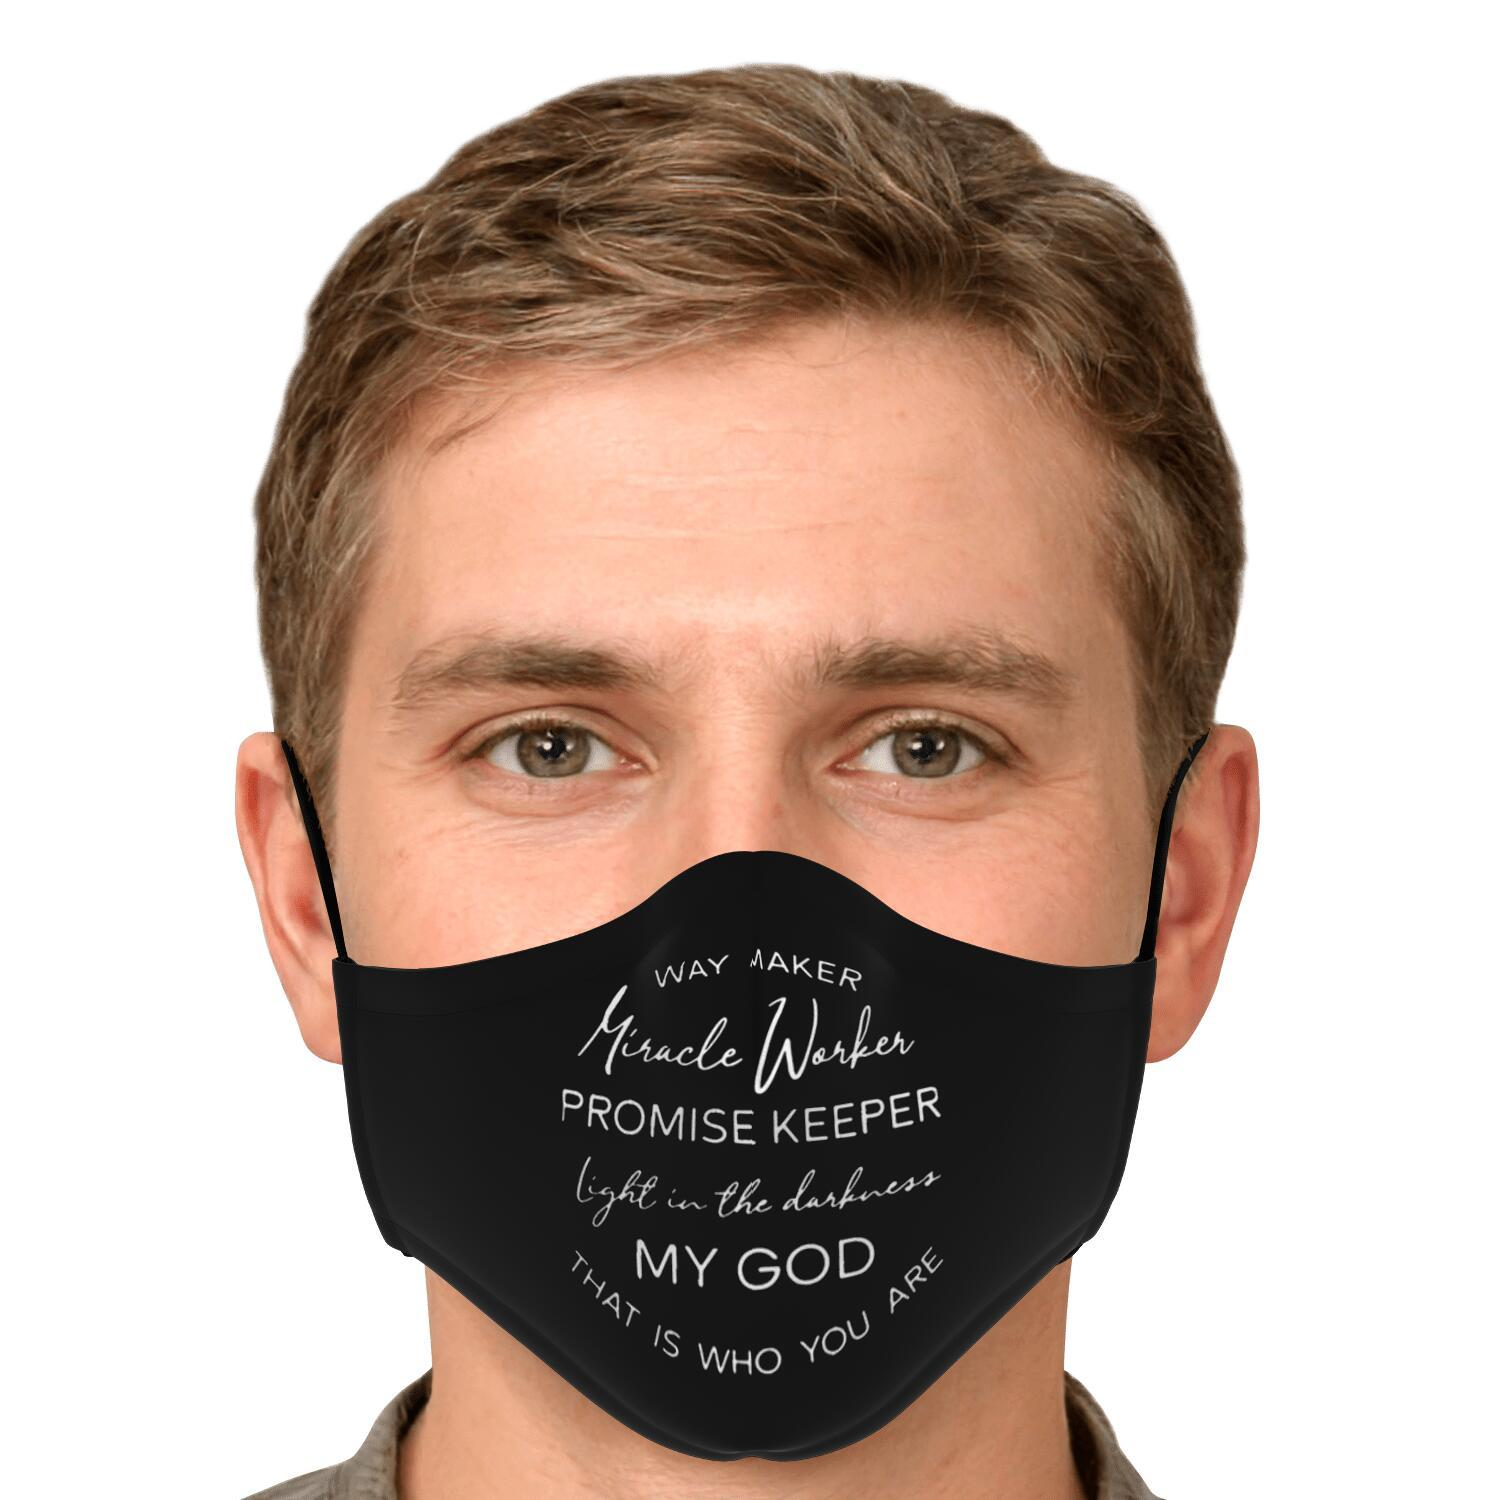 Way Maker Miracle Workers Promise Keeper Face Mask 4